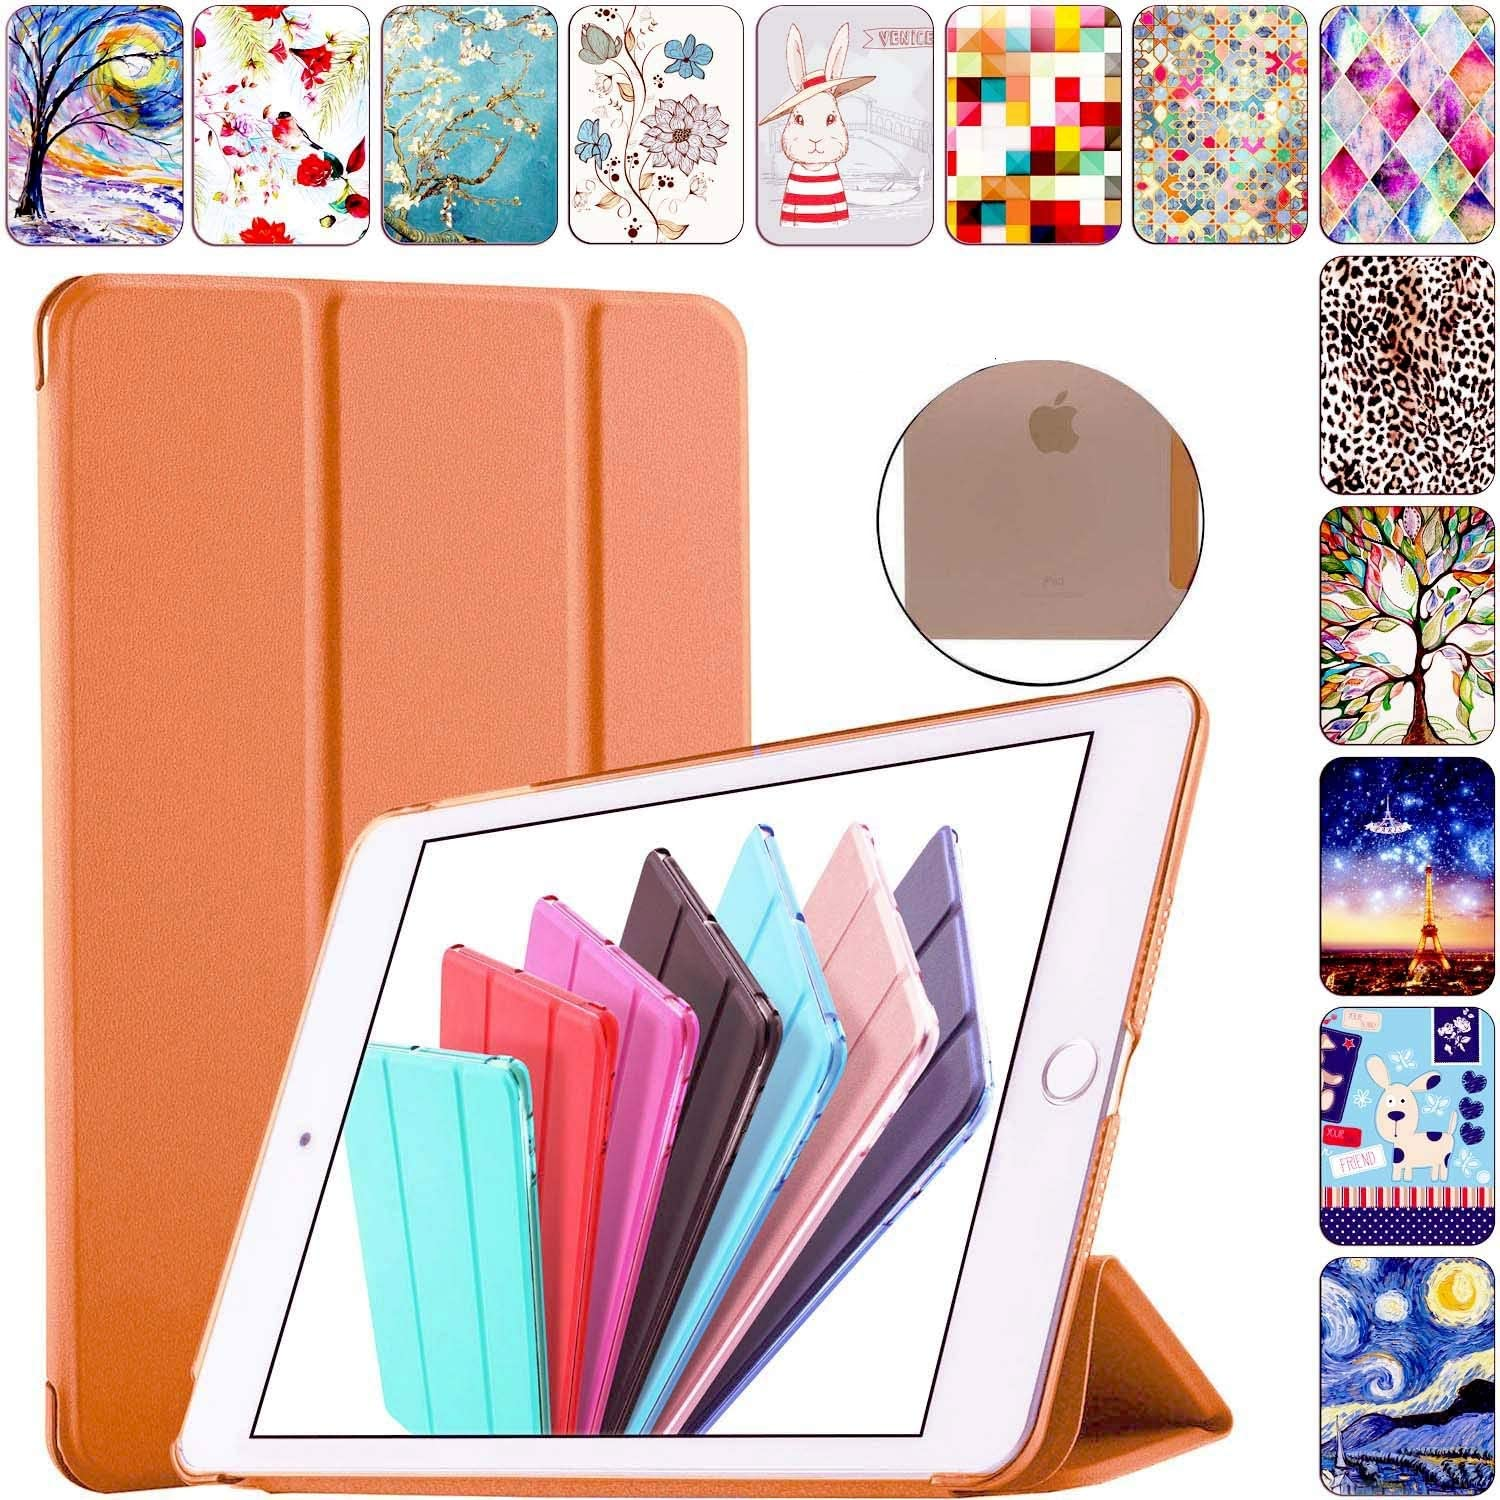 DuraSafe Cases for iPad Mini 3 2 1 Generation 7.9 Inch A1599 A1600 A1489 A1490 A1491 A1432 A1454 A1455 Trifold Hard Smart PC Translucent Back Cover - Orange